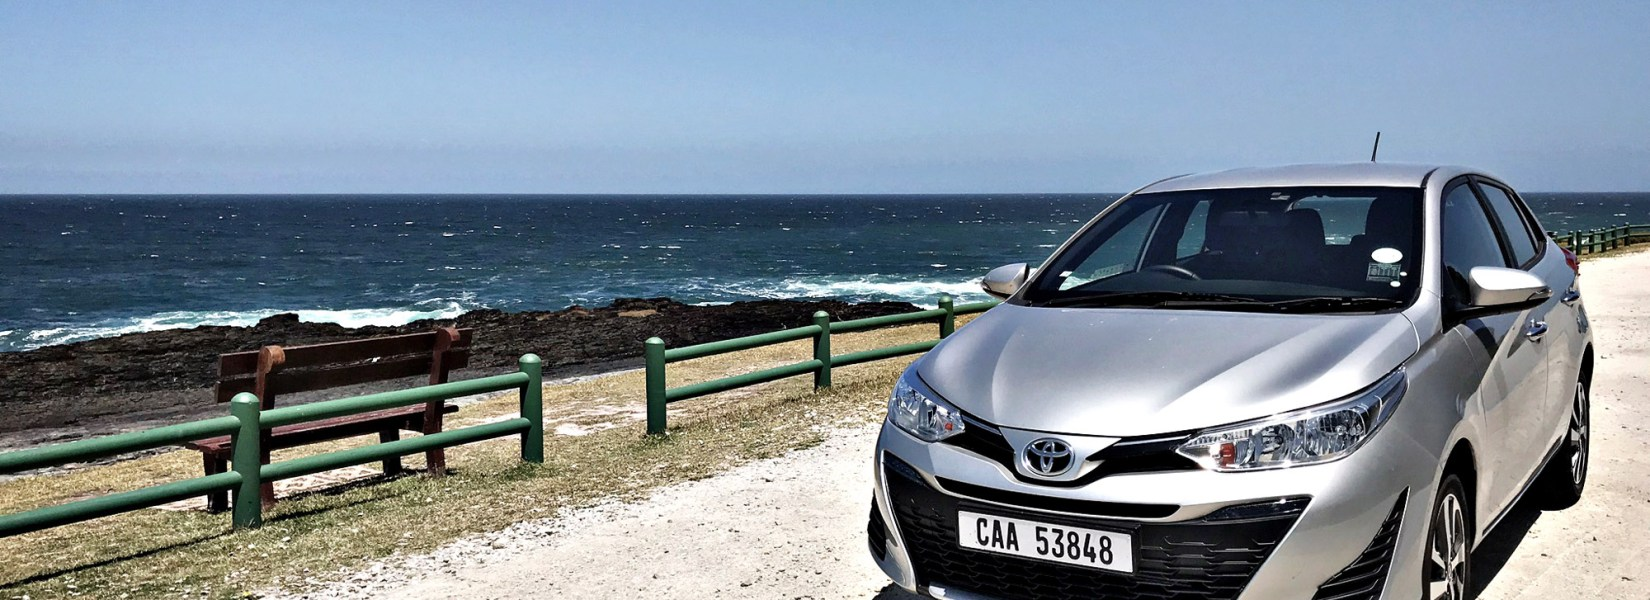 Renting a Car in South Africa | The Ultimate Guide.